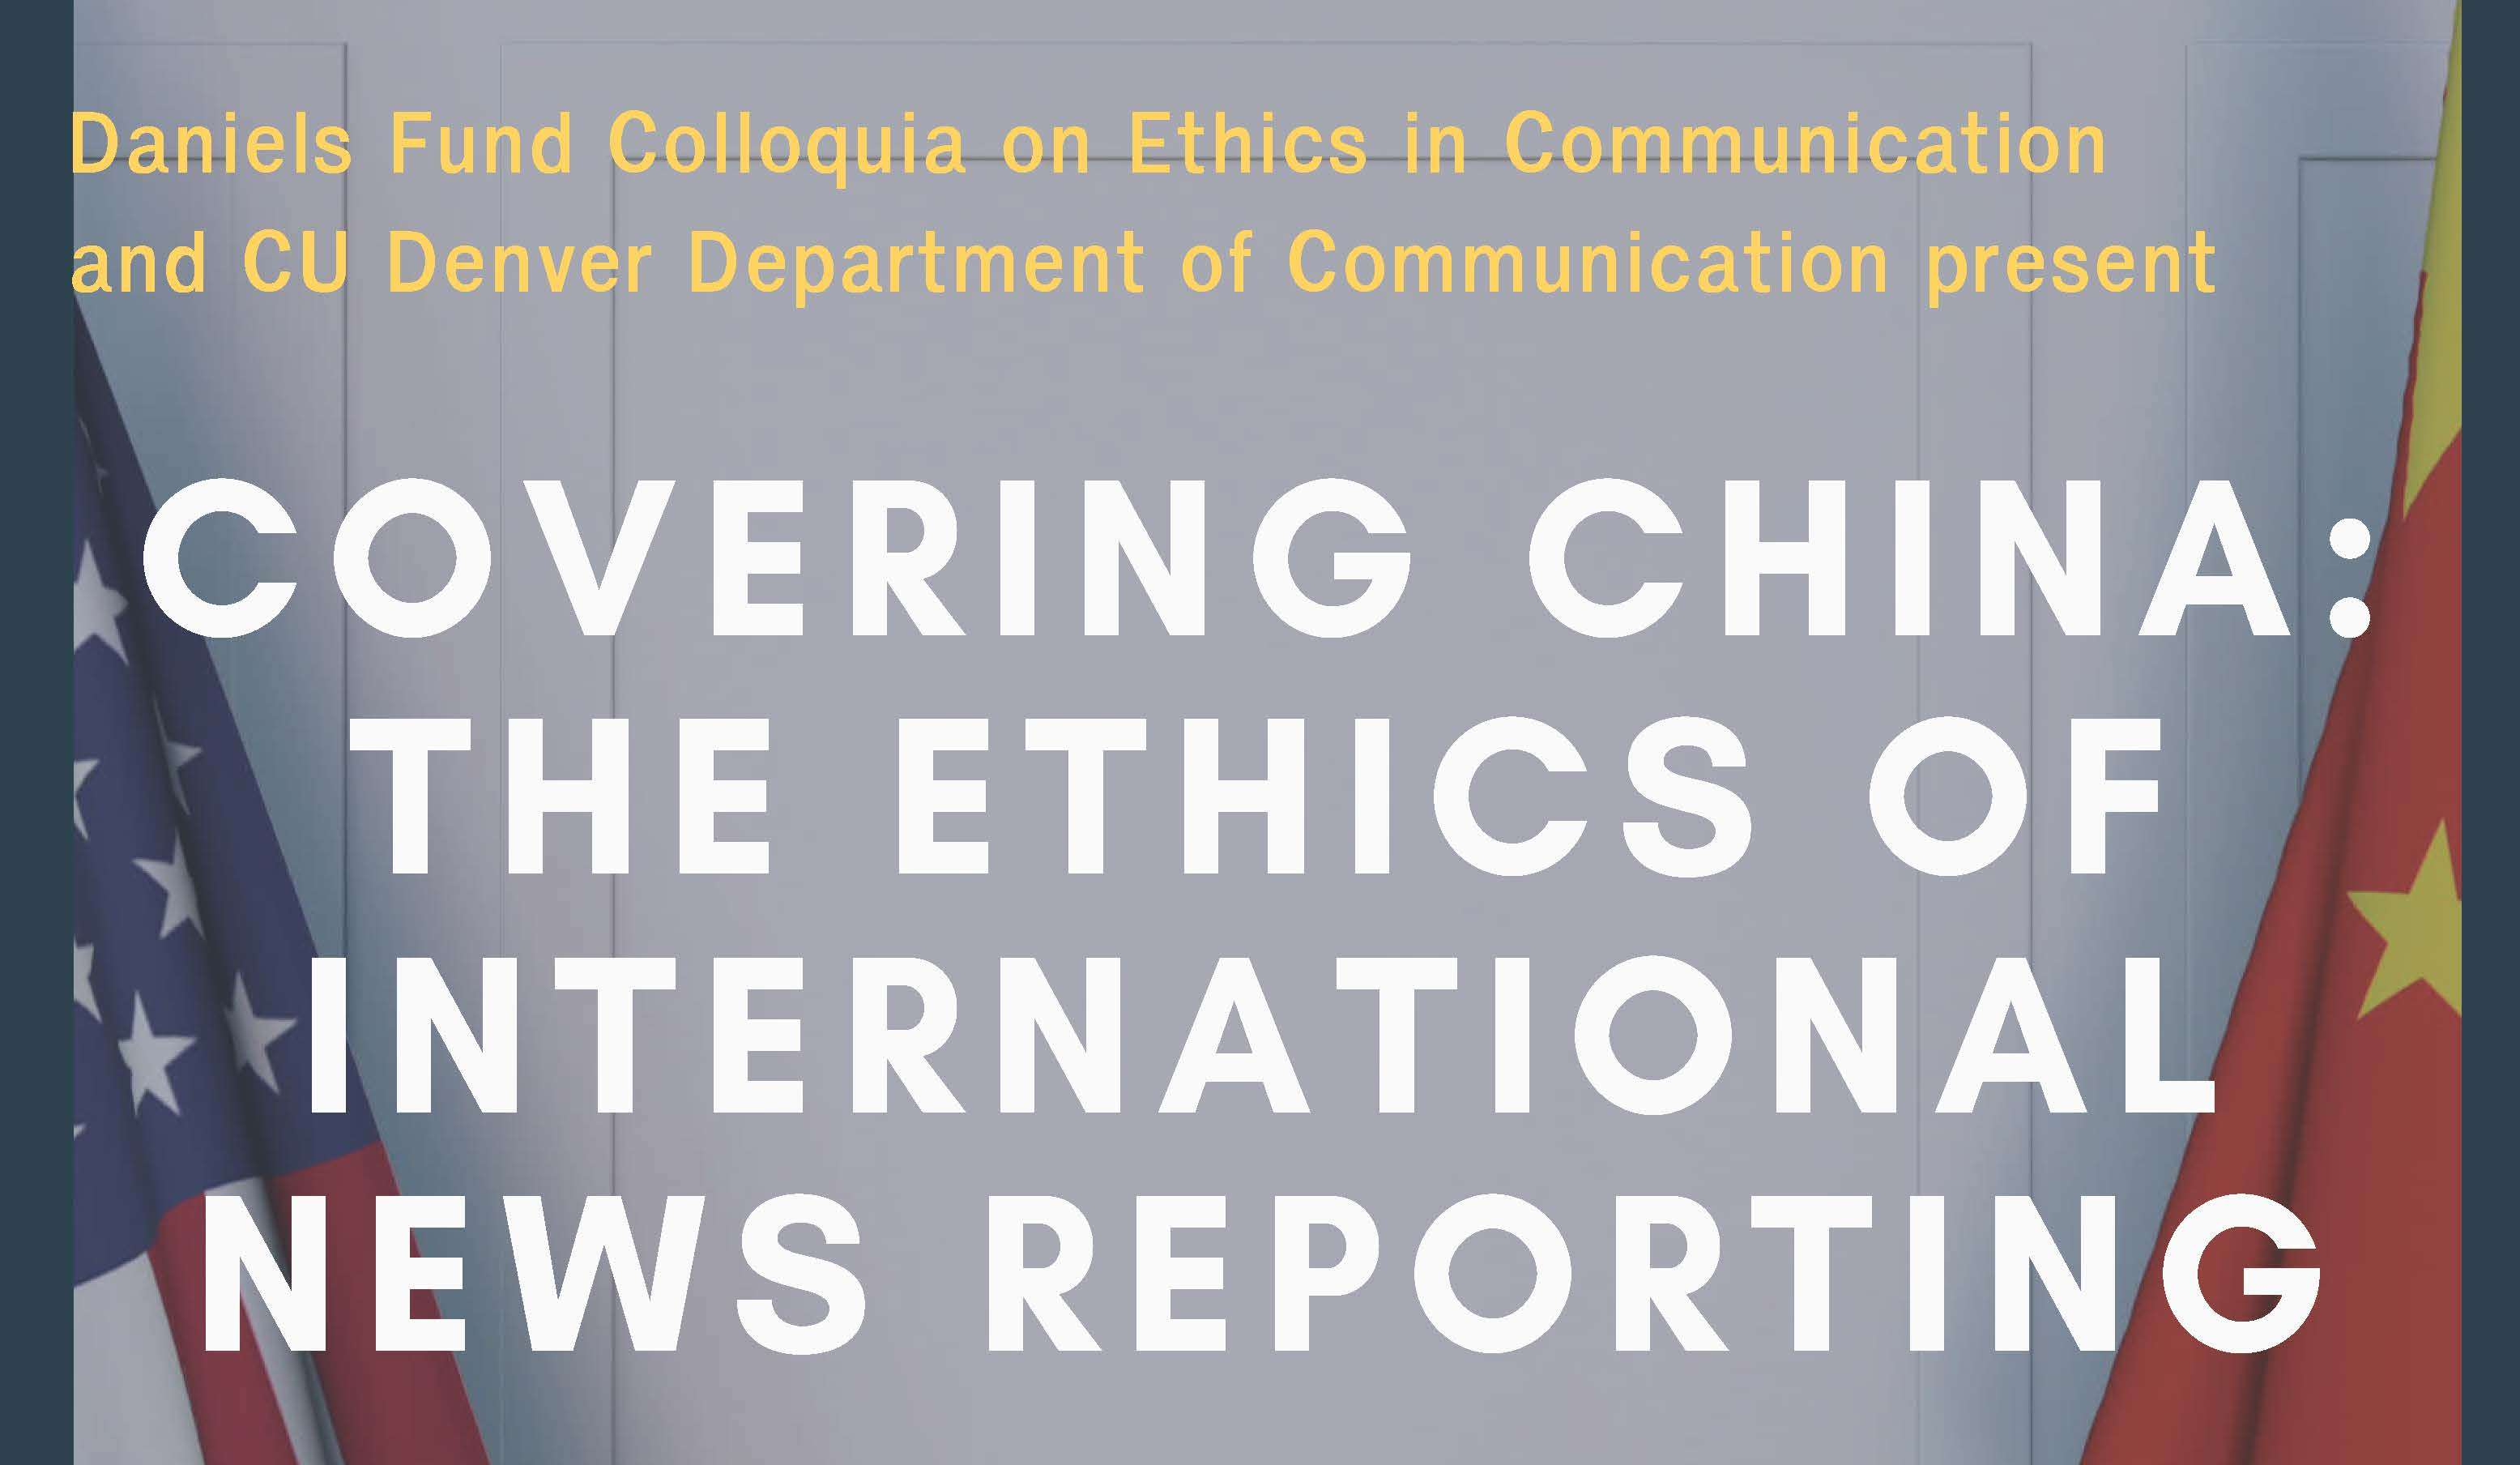 Covering China: The Ethics of International News Reporting